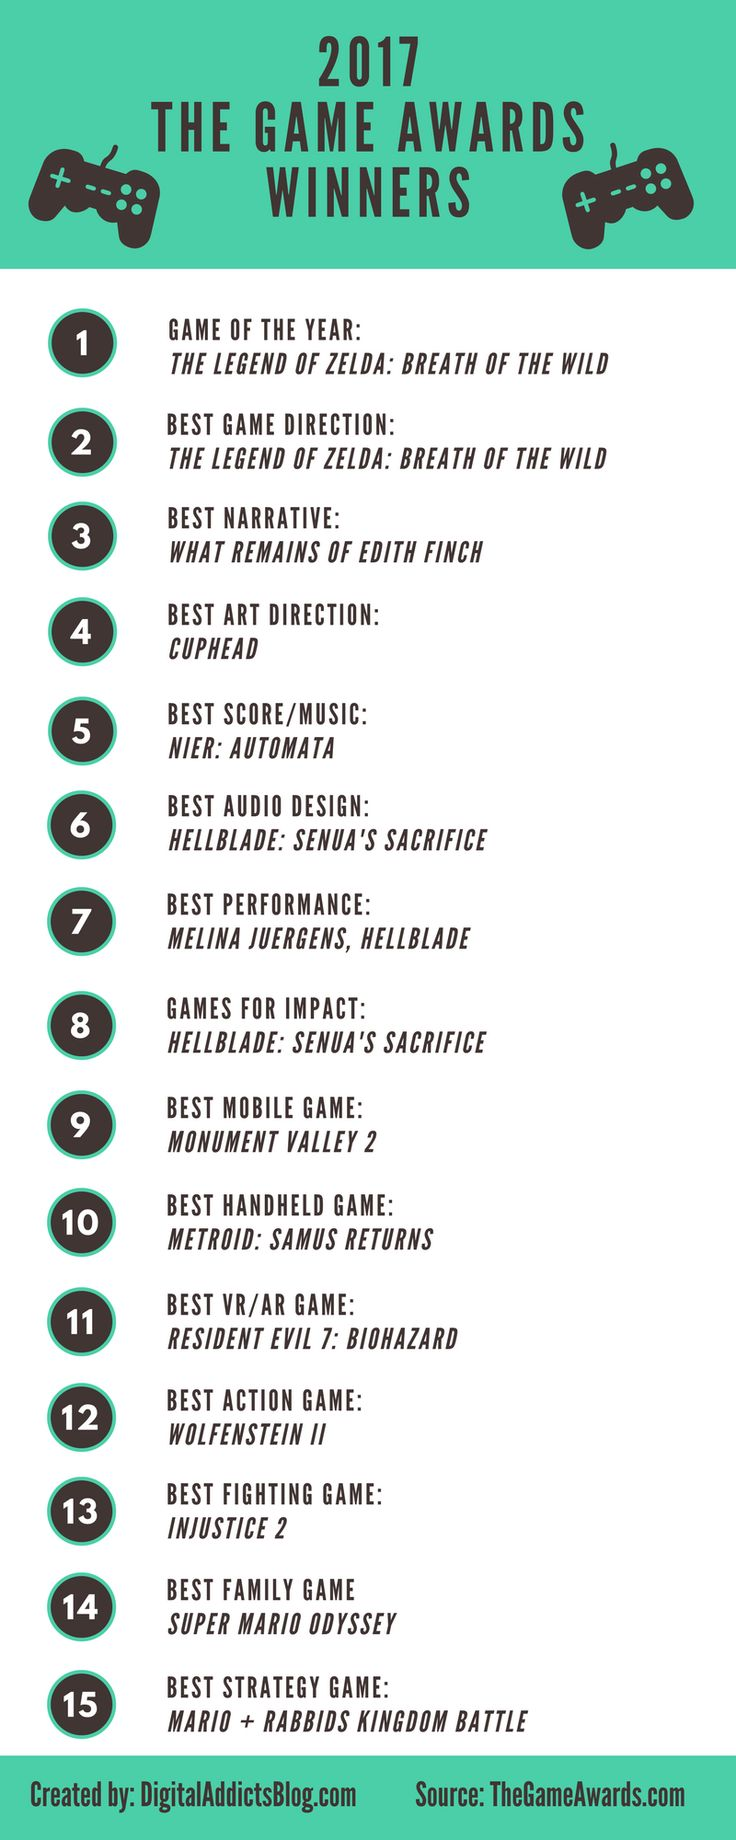 2017 The Game Awards Winners #infographic http://bit.ly/2mvUxoF